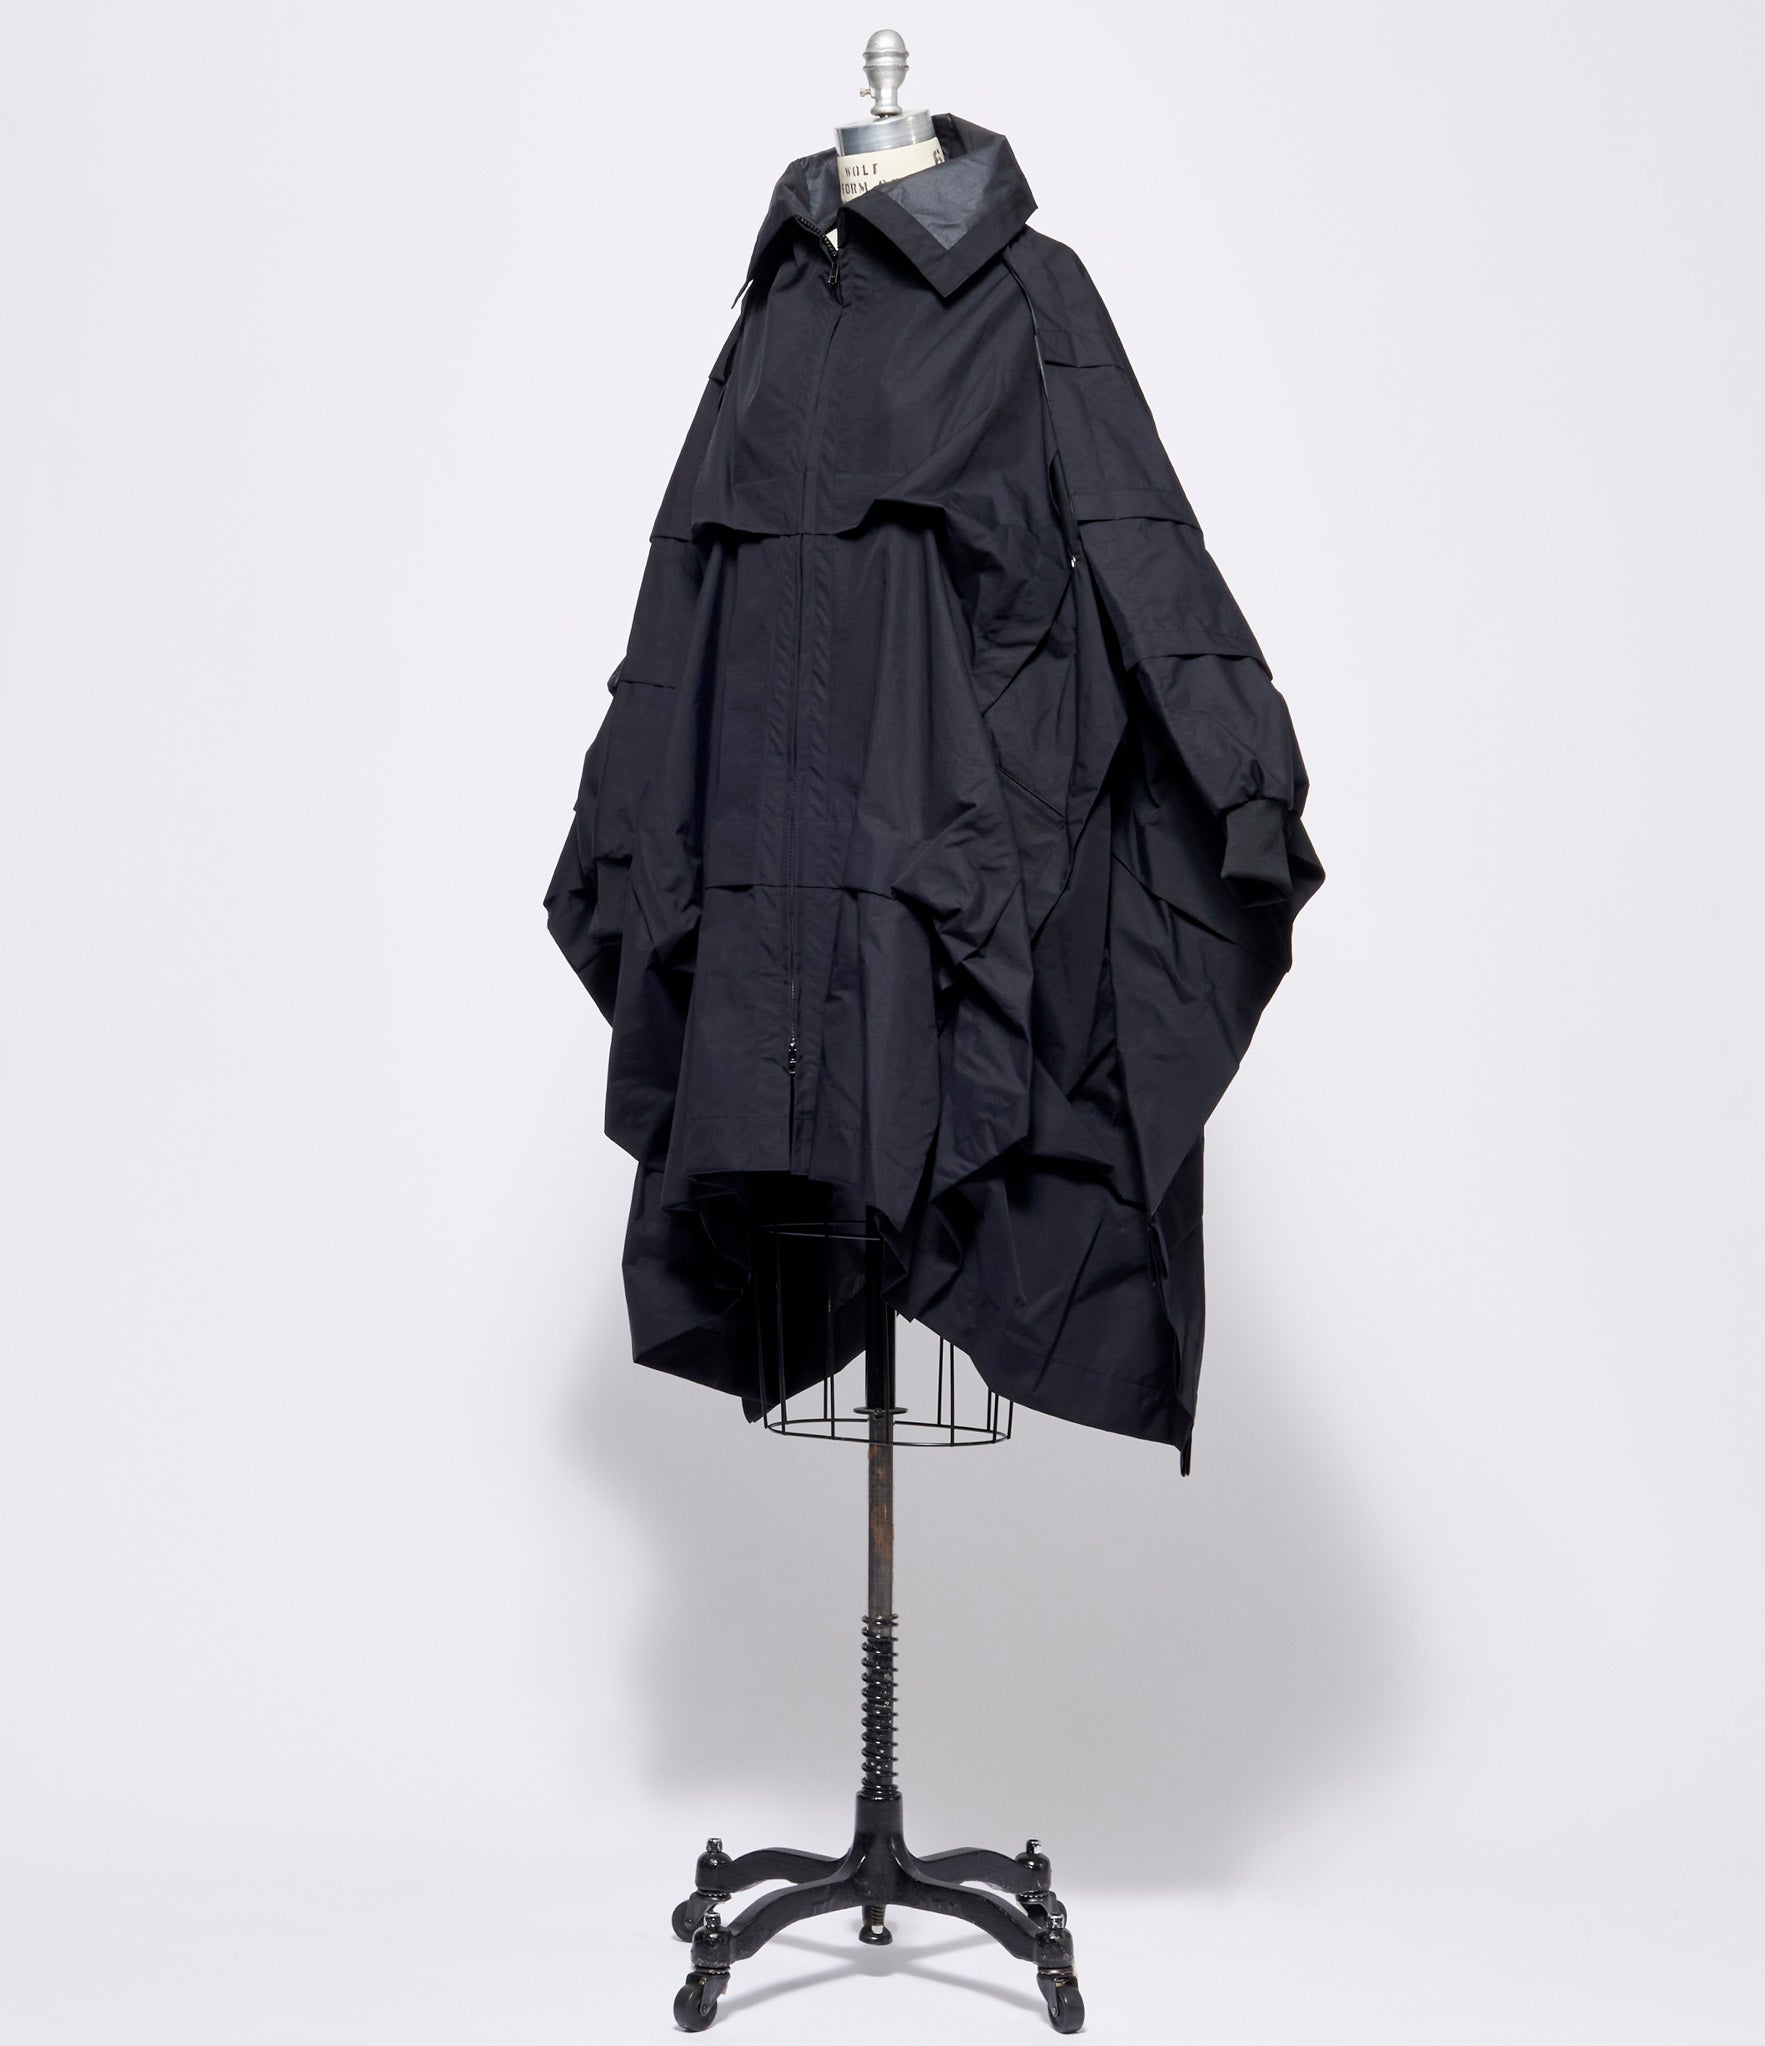 Limi Feu Tuck C Cape Coat